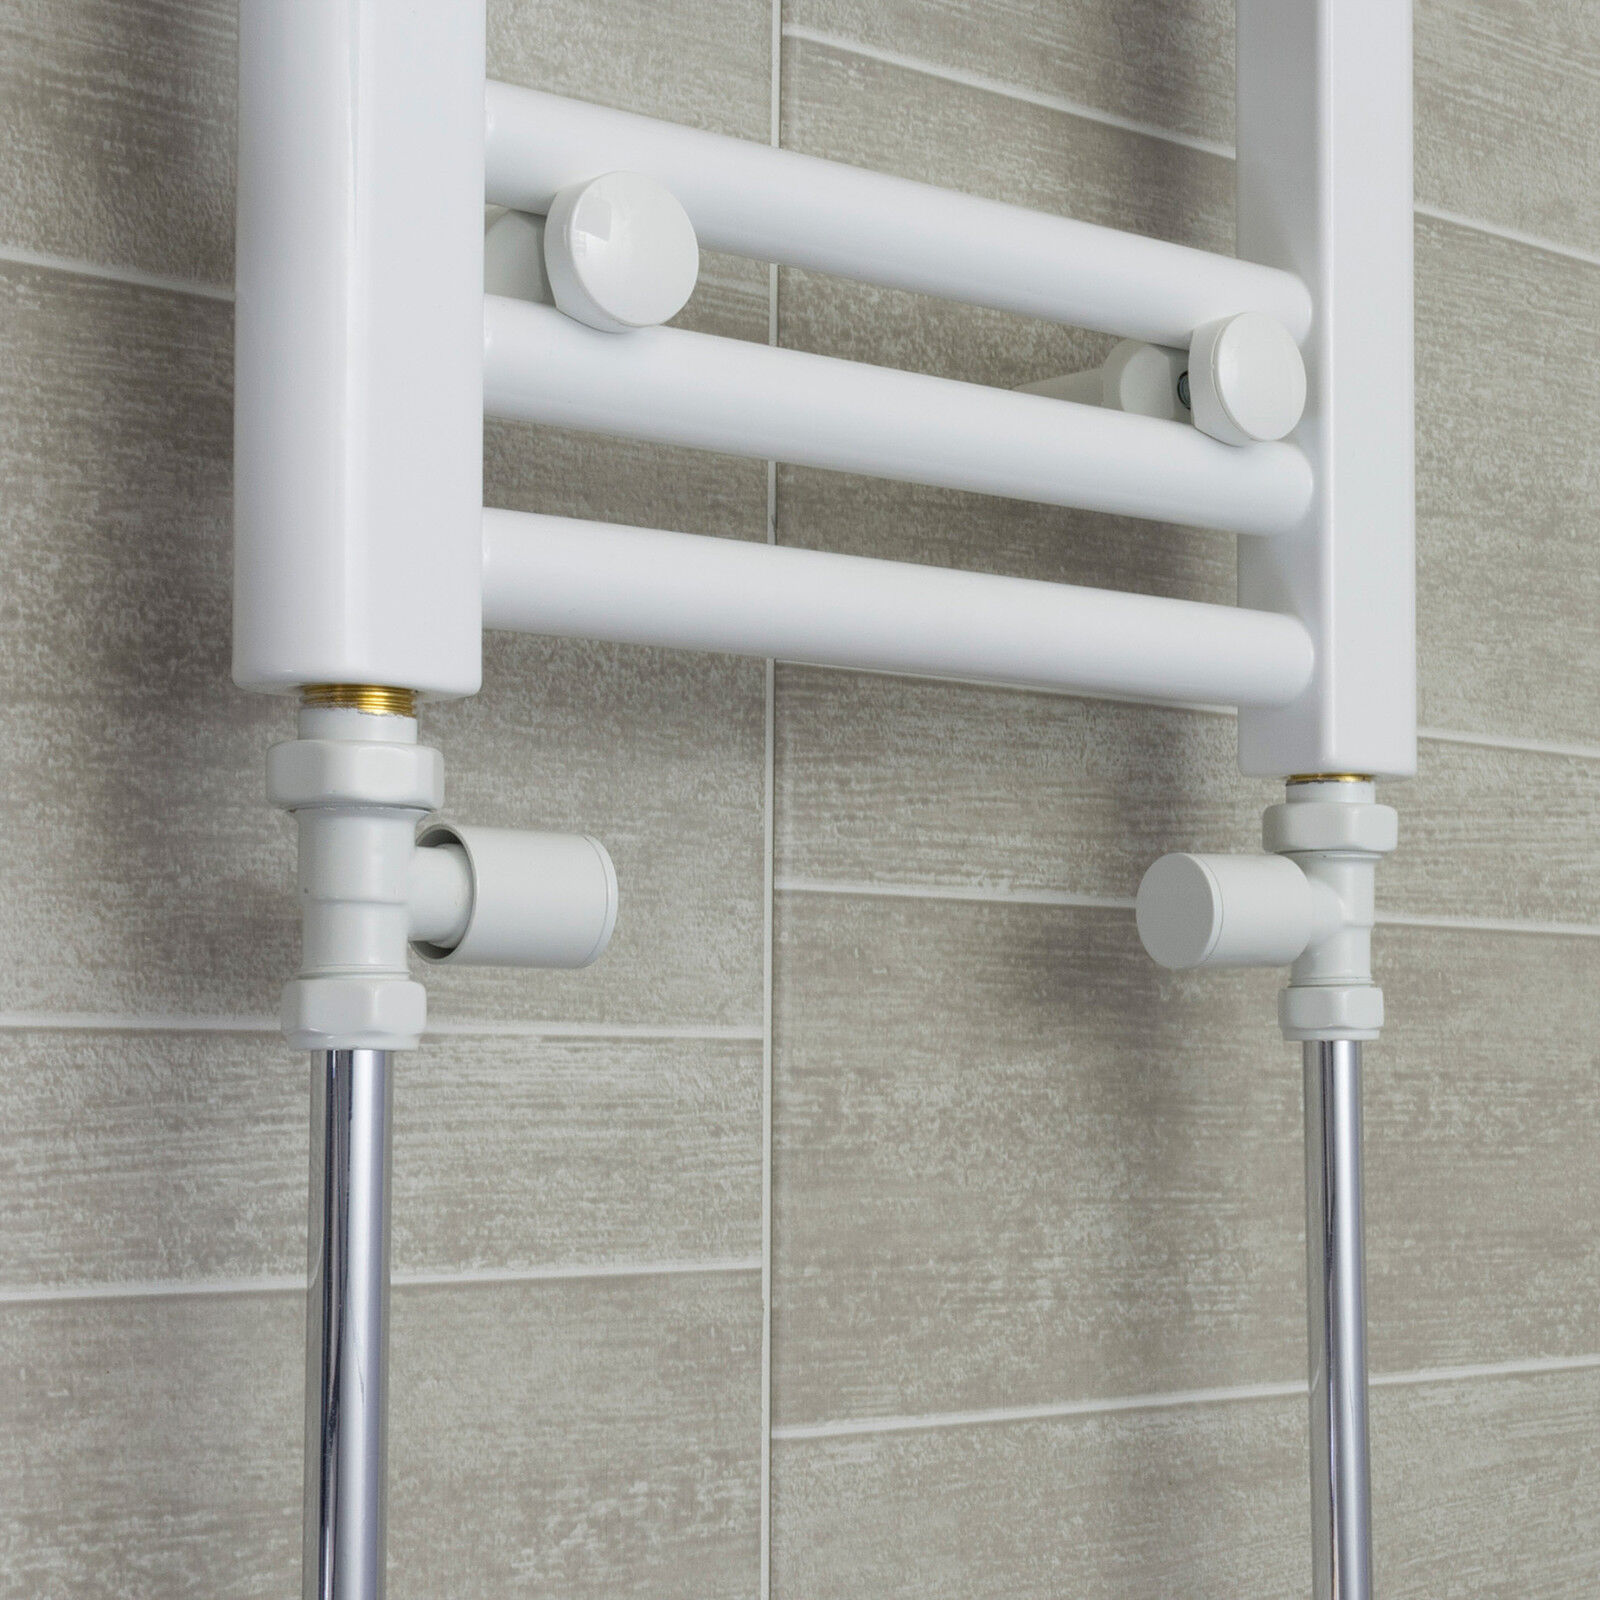 Towel Rail Rad Central Heating Bathroom Radiator White ...